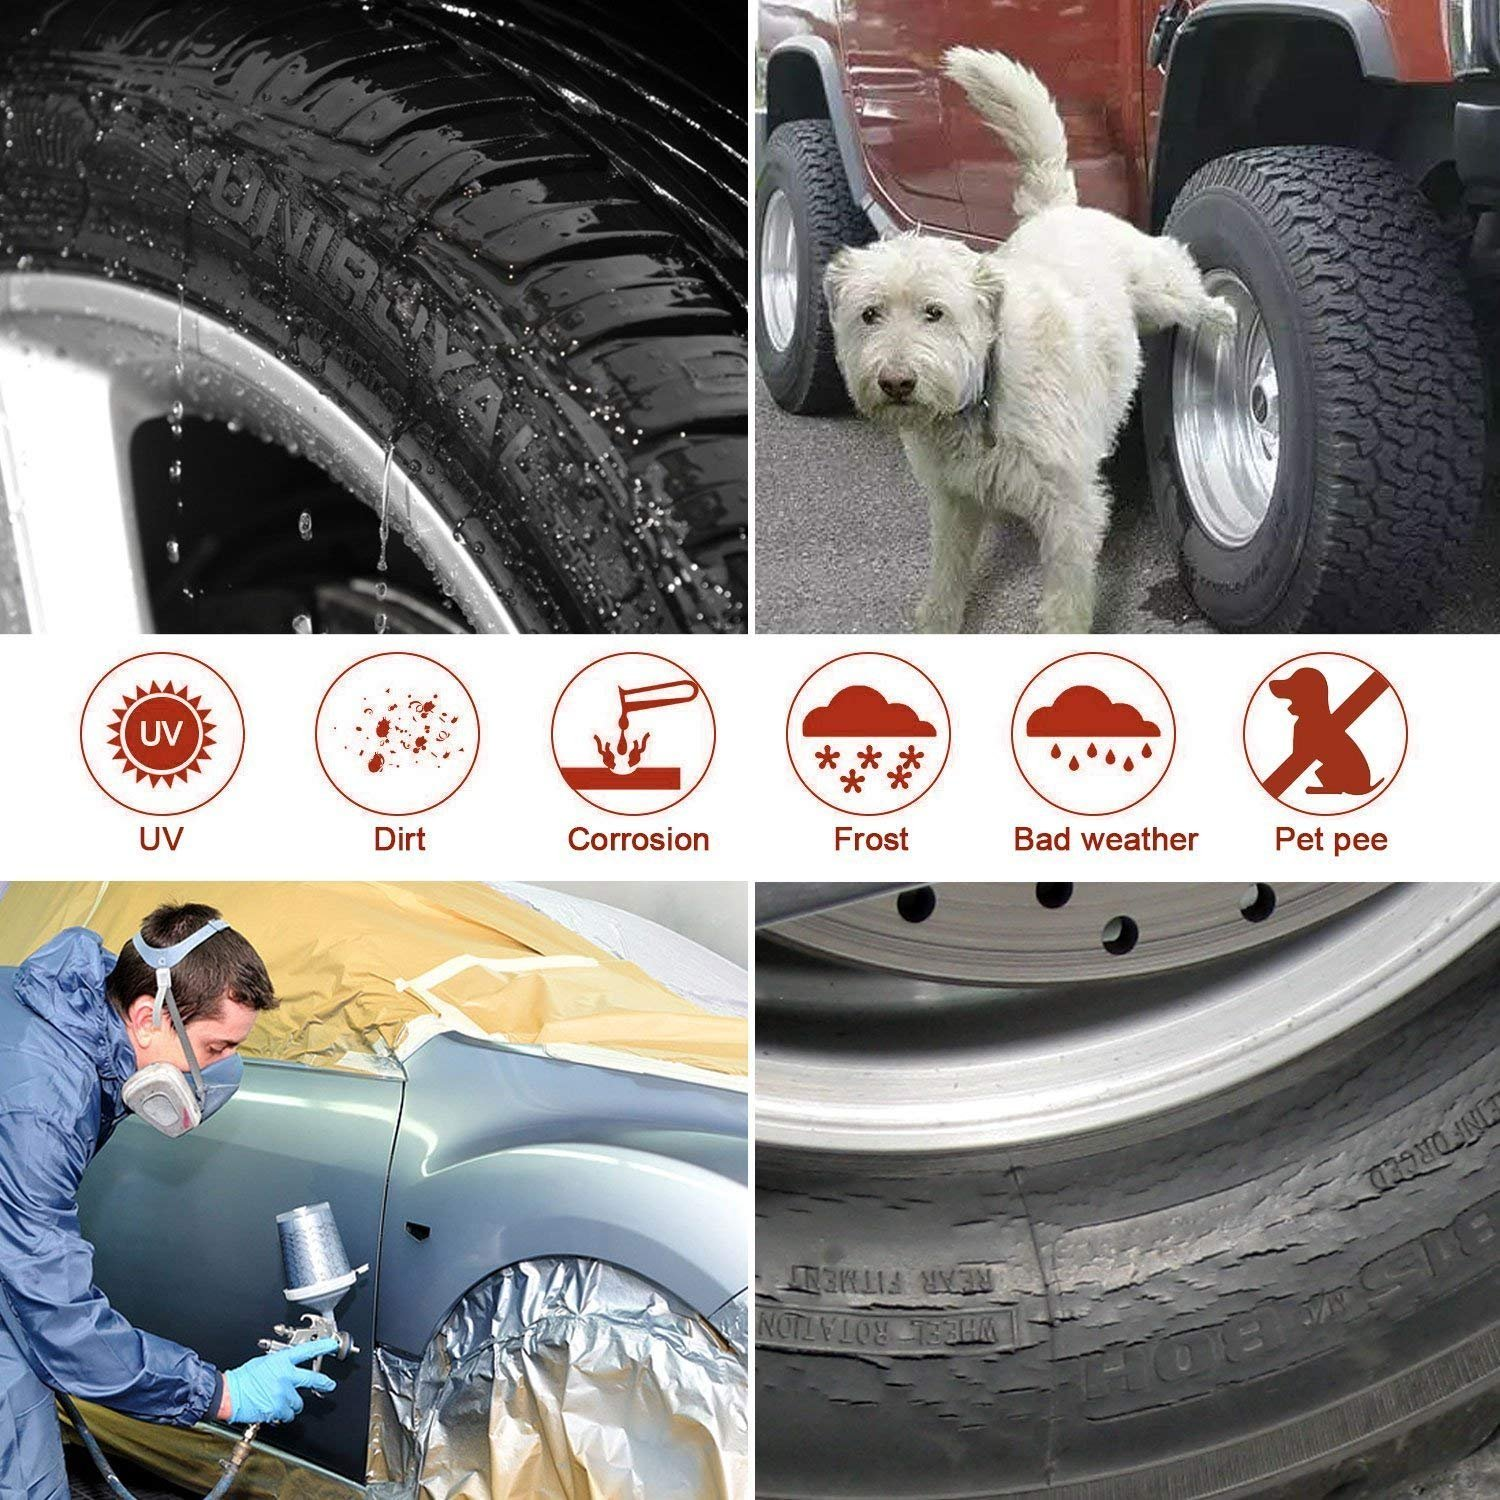 Sezslcy Tire Covers 4 Pack Waterproof Aluminum Film Tire Sun Protector Fits 27 to 29 Tire Diameters,Weatherproof Tire Protectors 5558998221